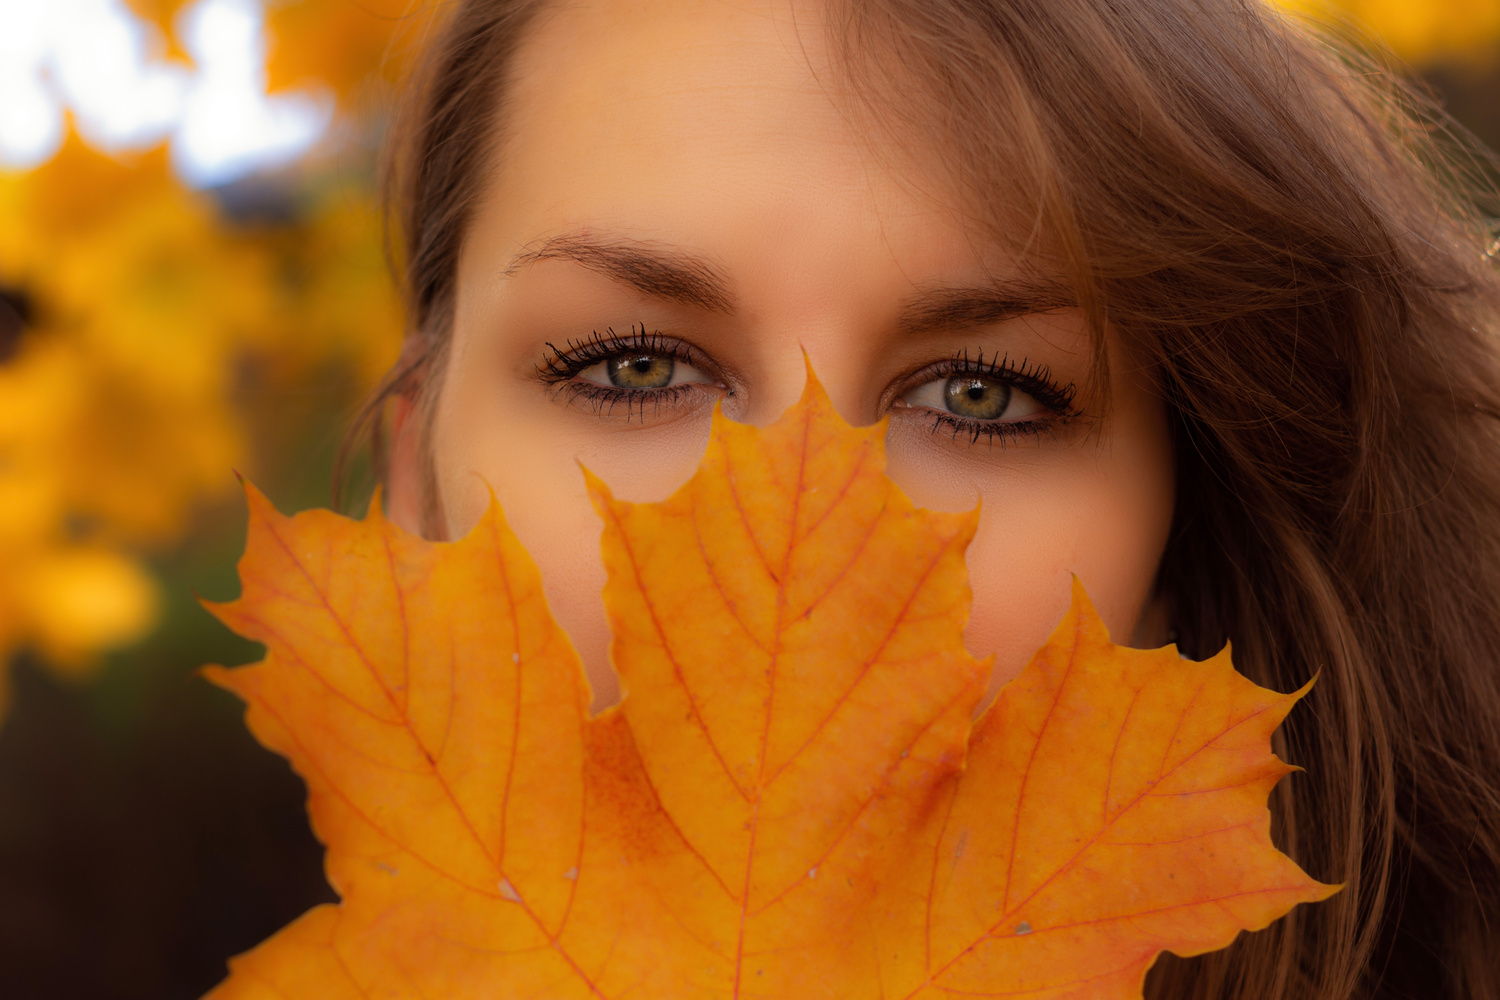 Autumn Beauty by Thomas Gehrke